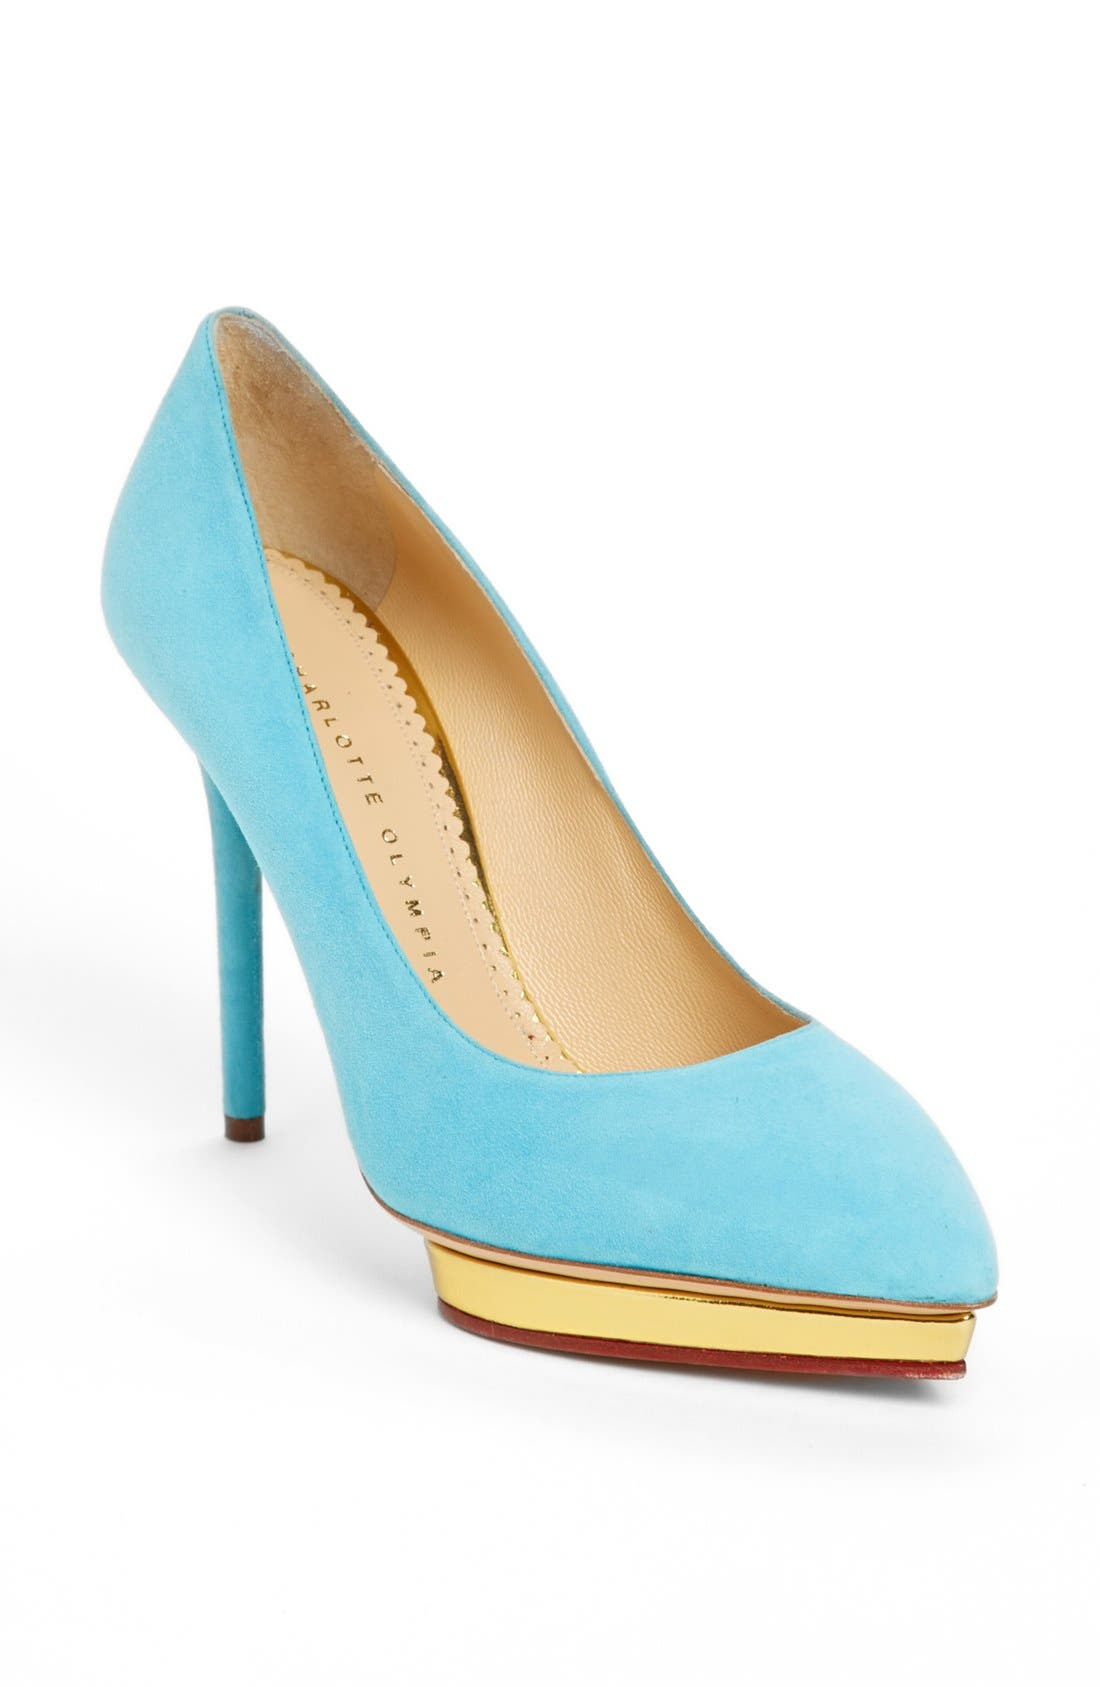 Alternate Image 1 Selected - Charlotte Olympia 'Debbie' Platform Pump